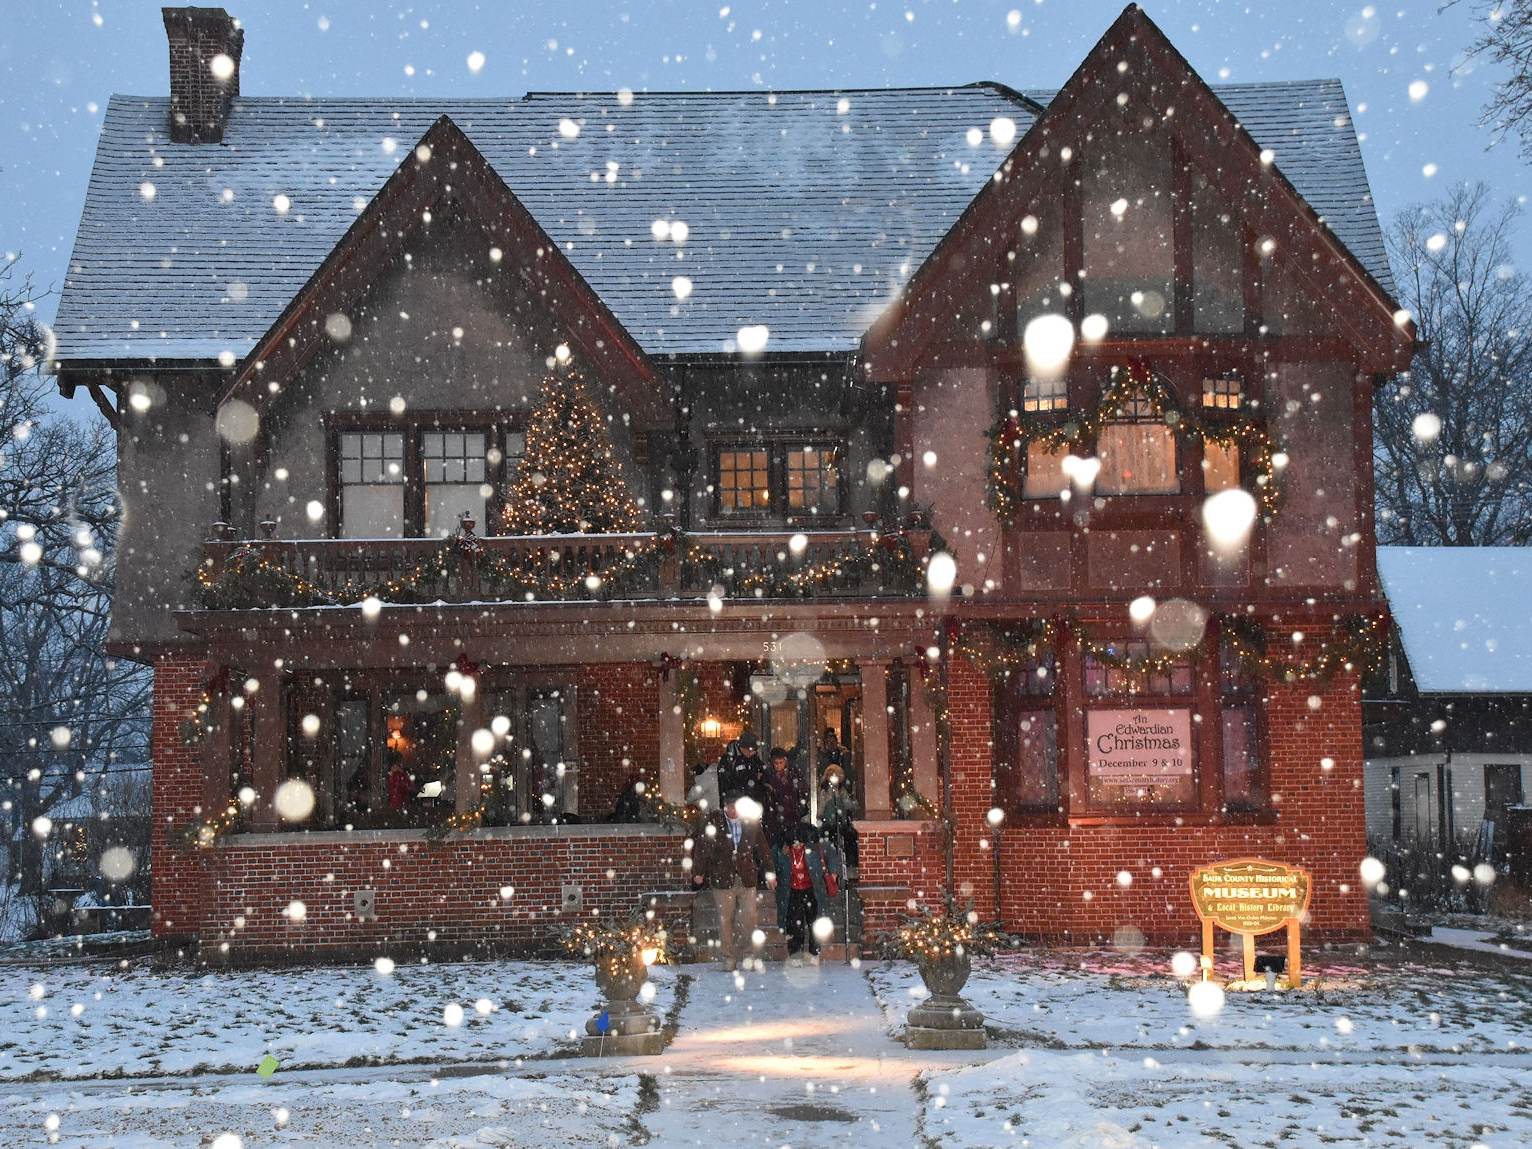 Edwardian Christmas Celebrations Photo Tour